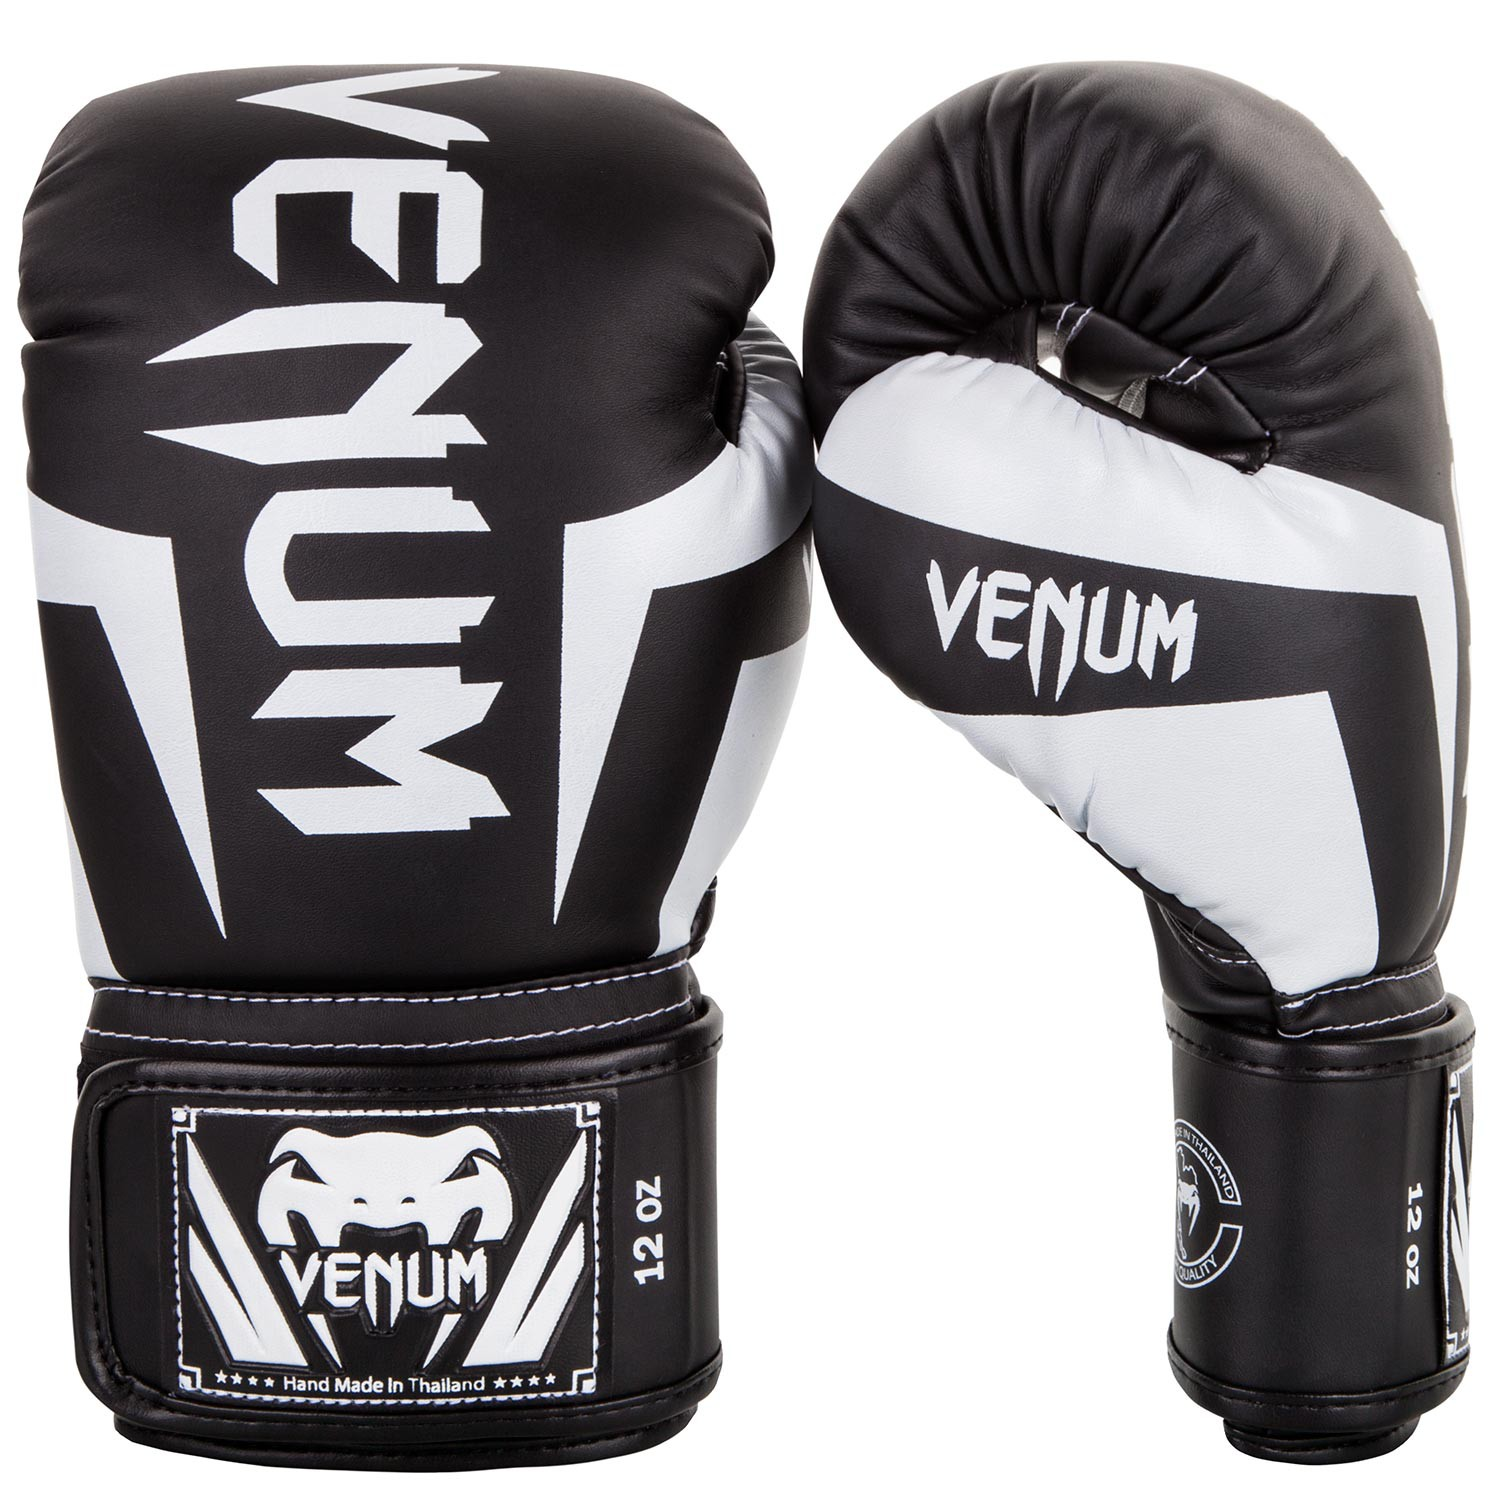 Venum Elite Boxing Gloves, Black/White 10 oz - Venum